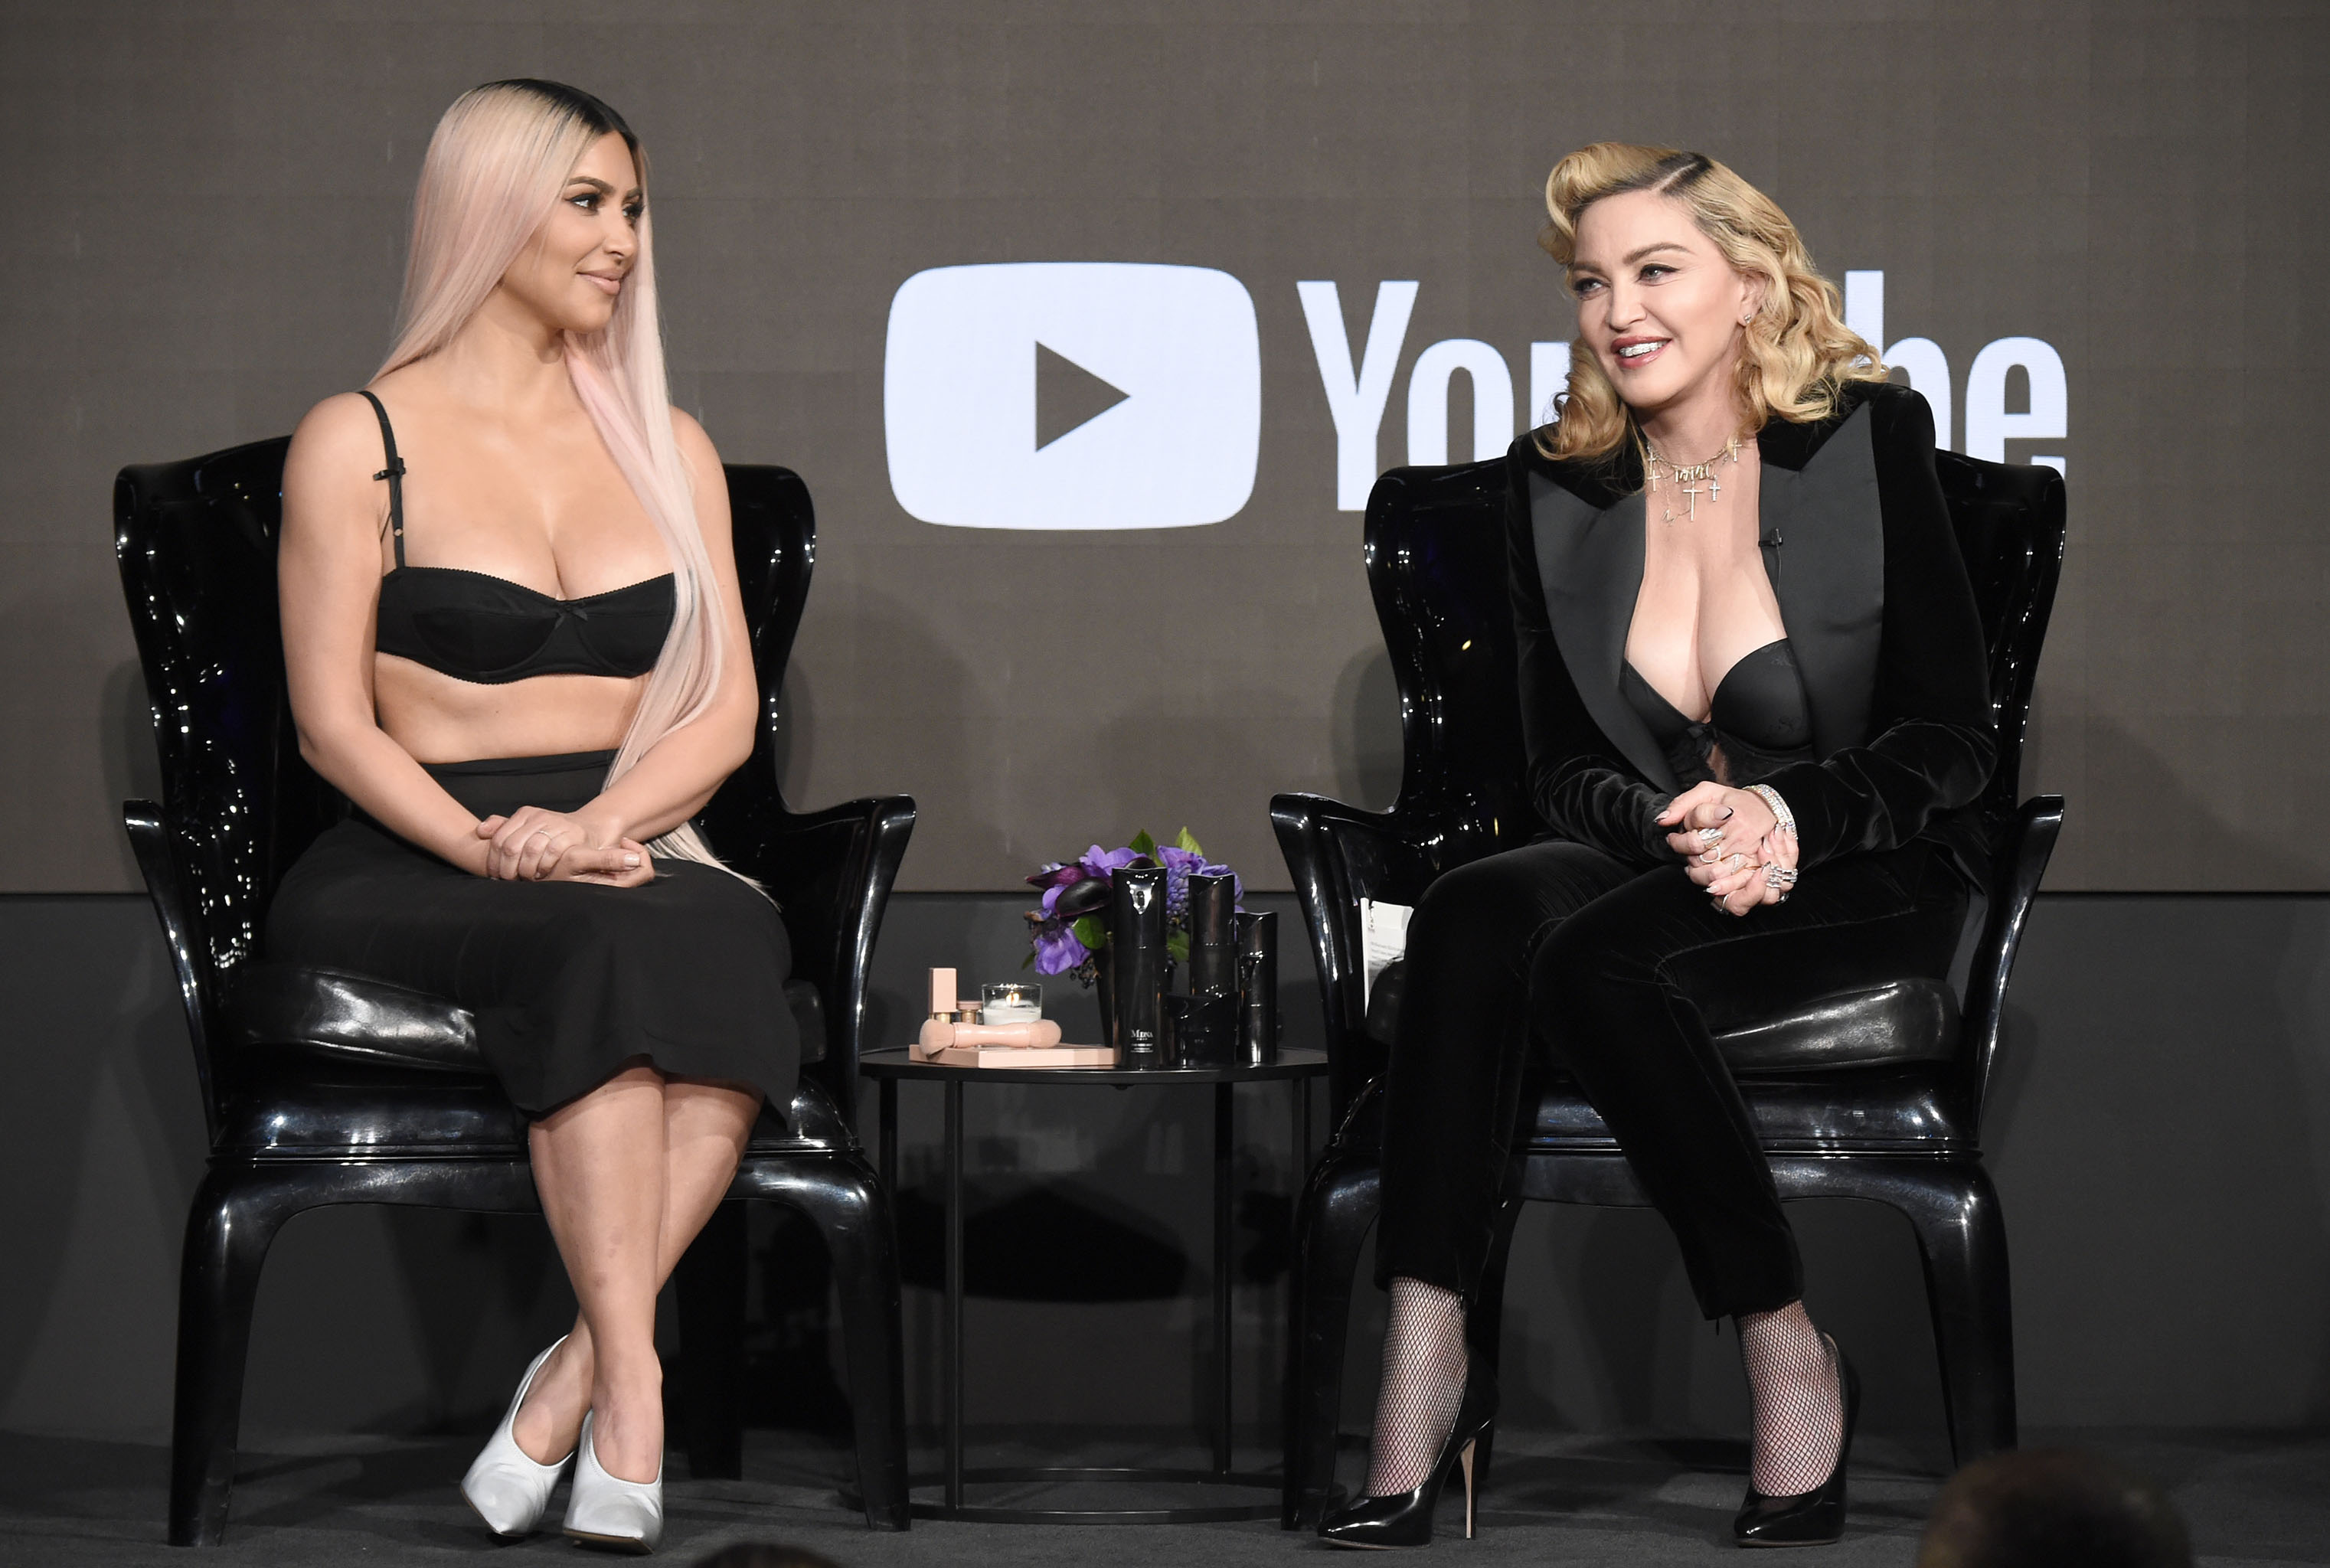 LOS ANGELES, CA - MARCH 06:  Kim Kardashian and Madonna speak onstage at MDNA SKIN hosts Madonna and Kim Kardashian West for a beauty conversation at YouTube Space LA on March 6, 2018 in Los Angeles, California.  (Photo by Kevin Mazur/Getty Images for Madonna's MDNA SKIN) *** Local Caption *** Kim Kardashian;Madonna